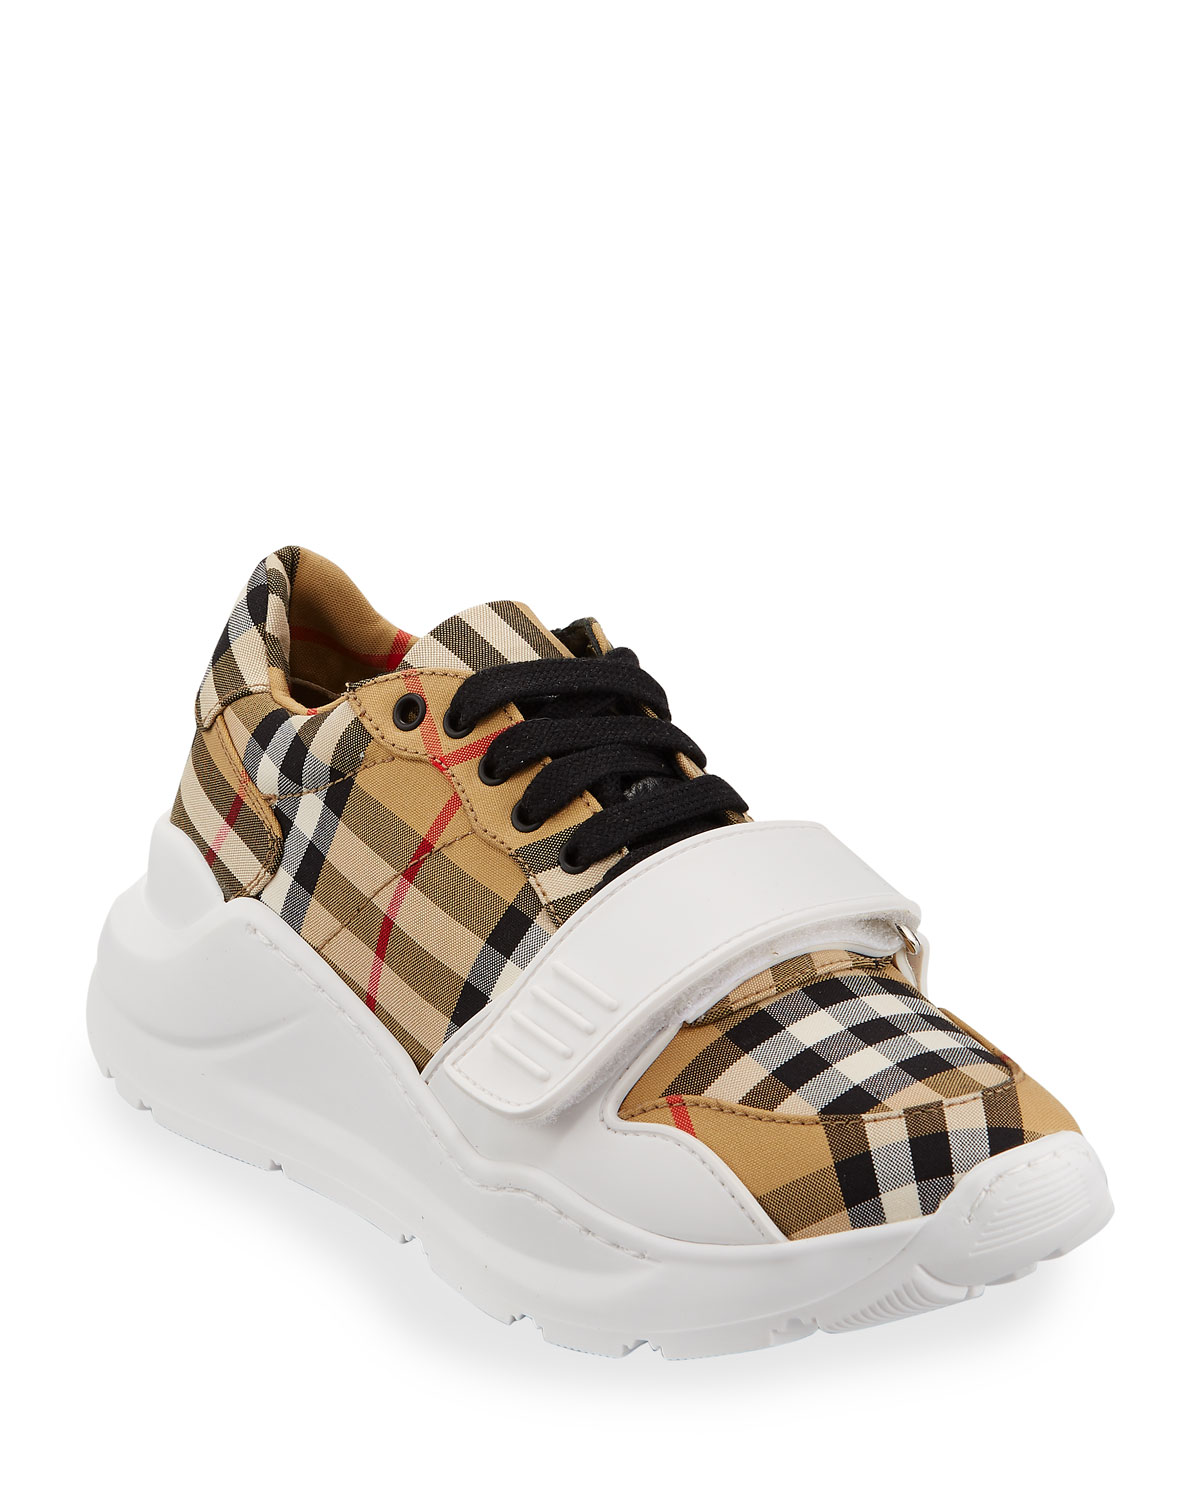 ed0885dba1d3 Burberry Regis Check Low-Top Sneakers with Exaggerated Sole   Neiman ...